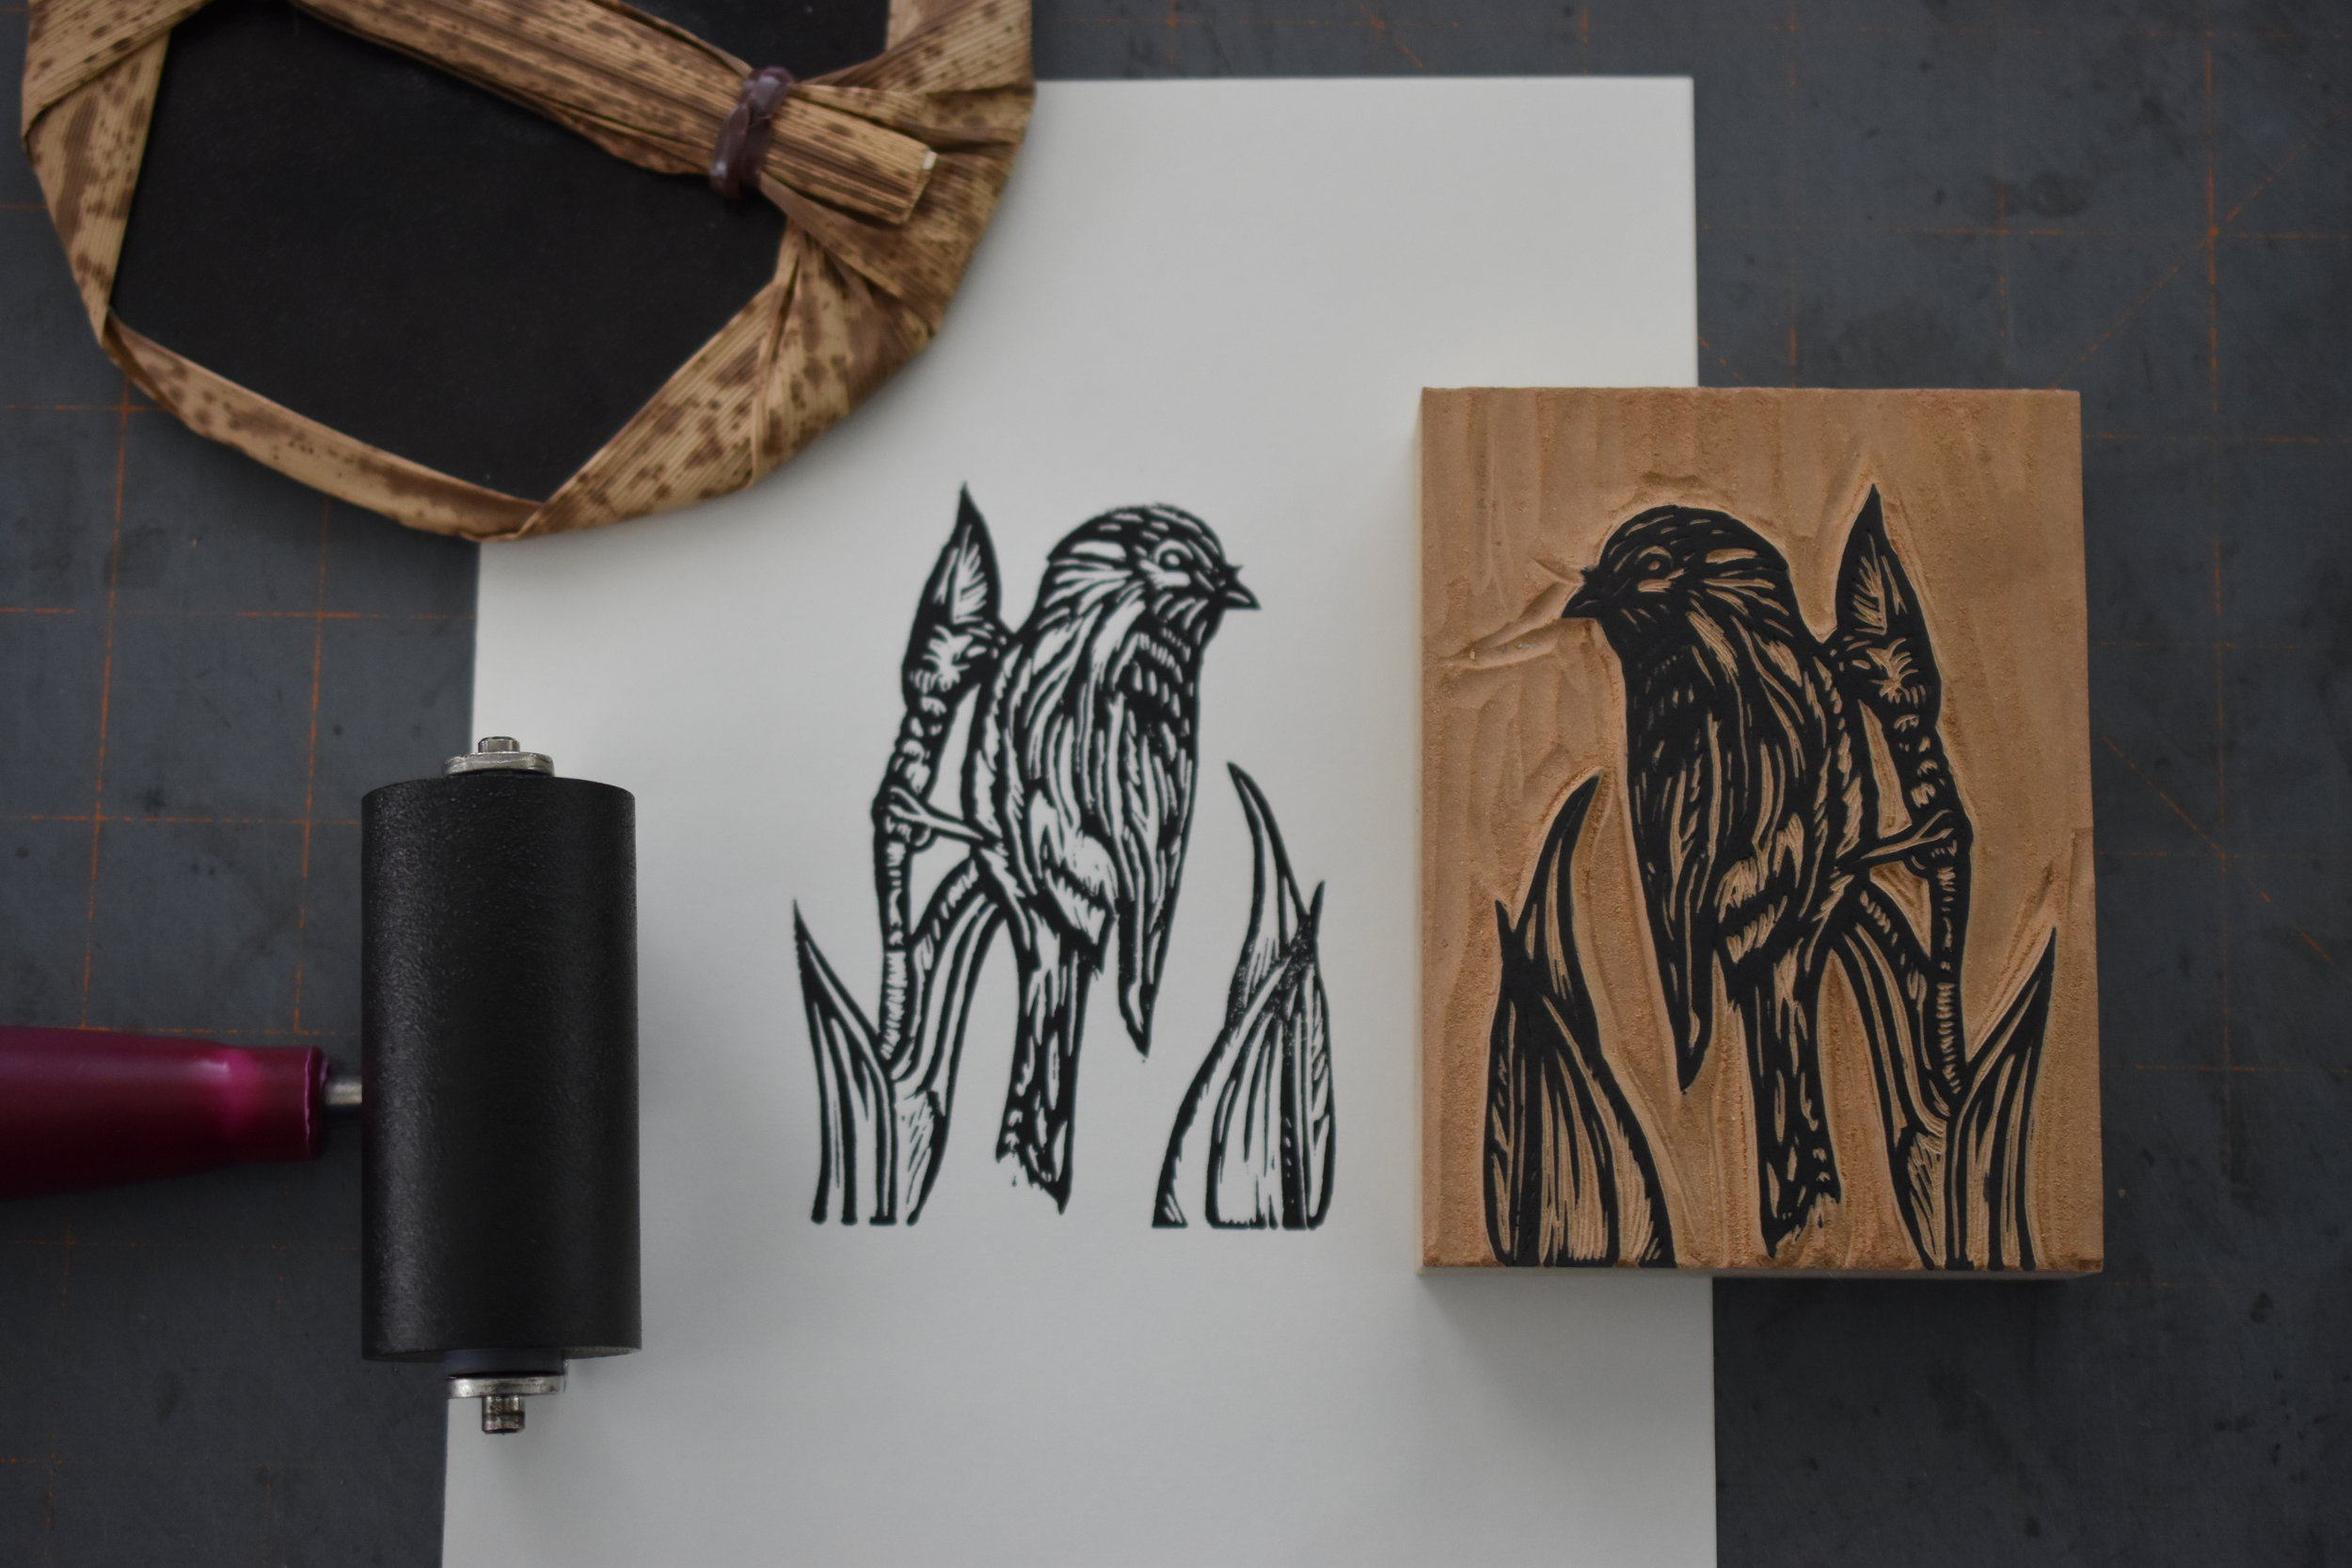 Finch and bud carved and proofed.